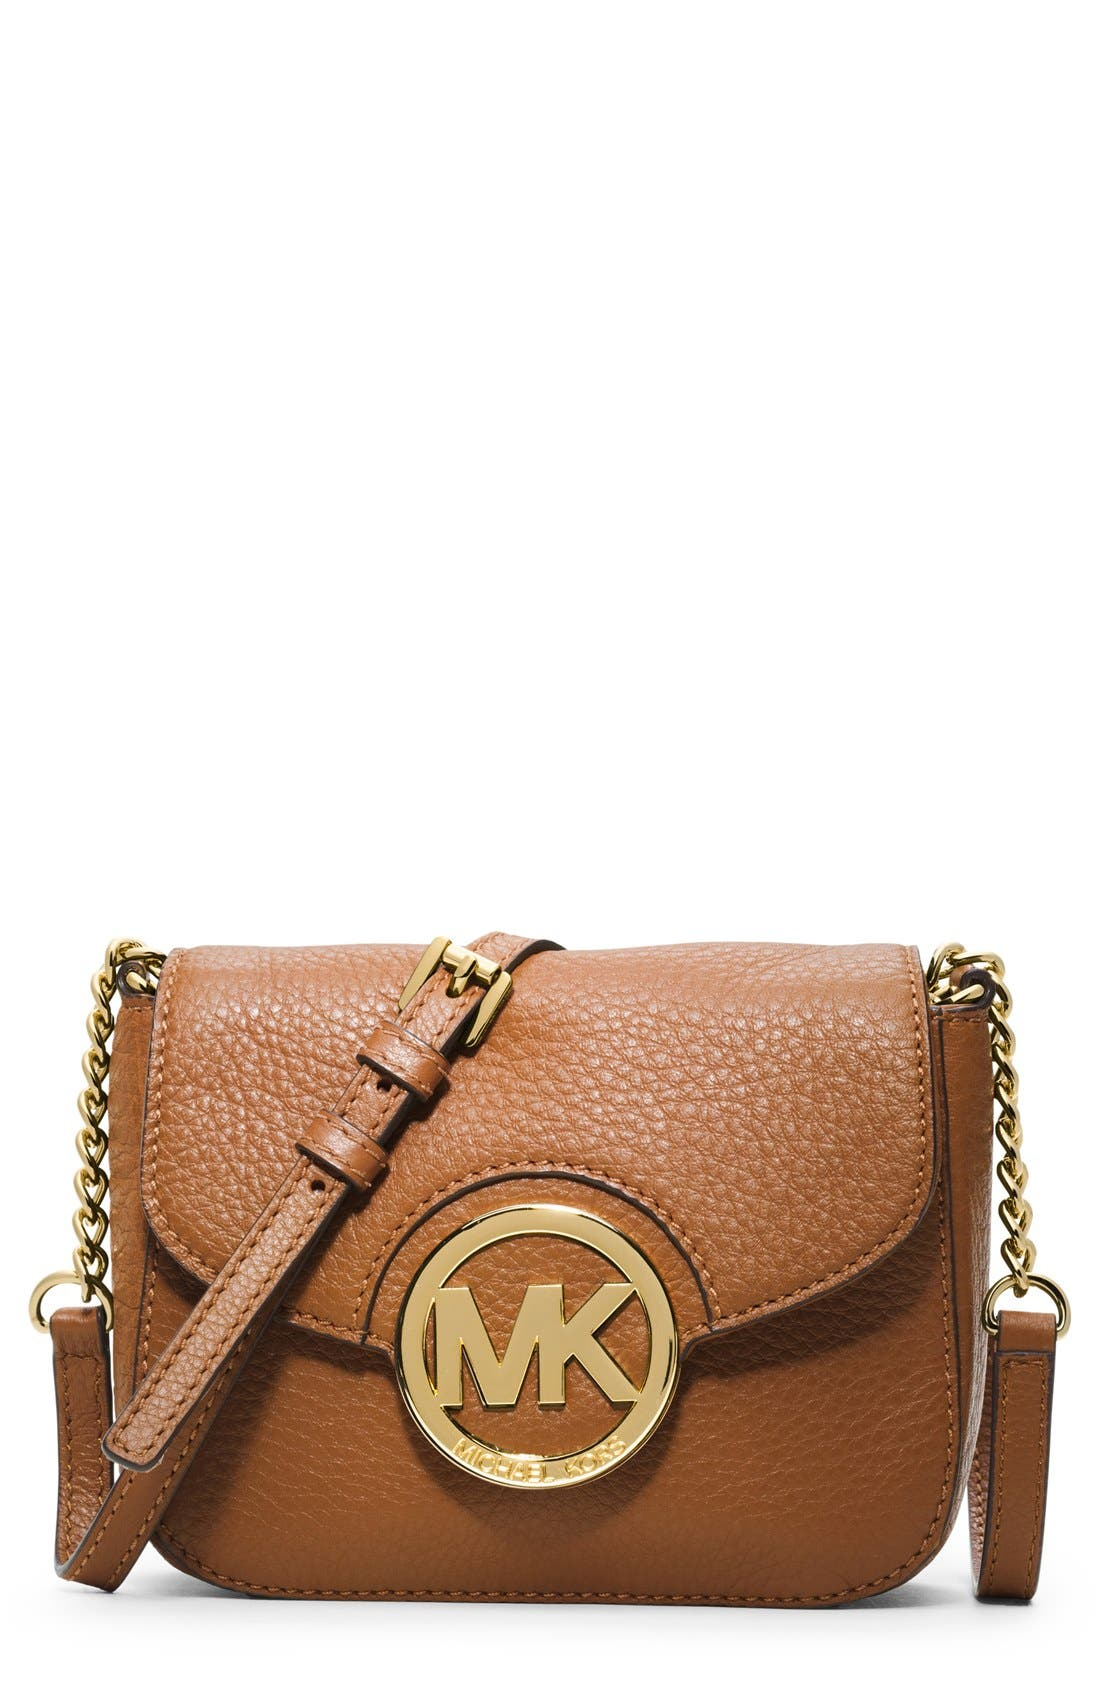 Main Image - MICHAEL Michael Kors 'Small Fulton' Crossbody Bag